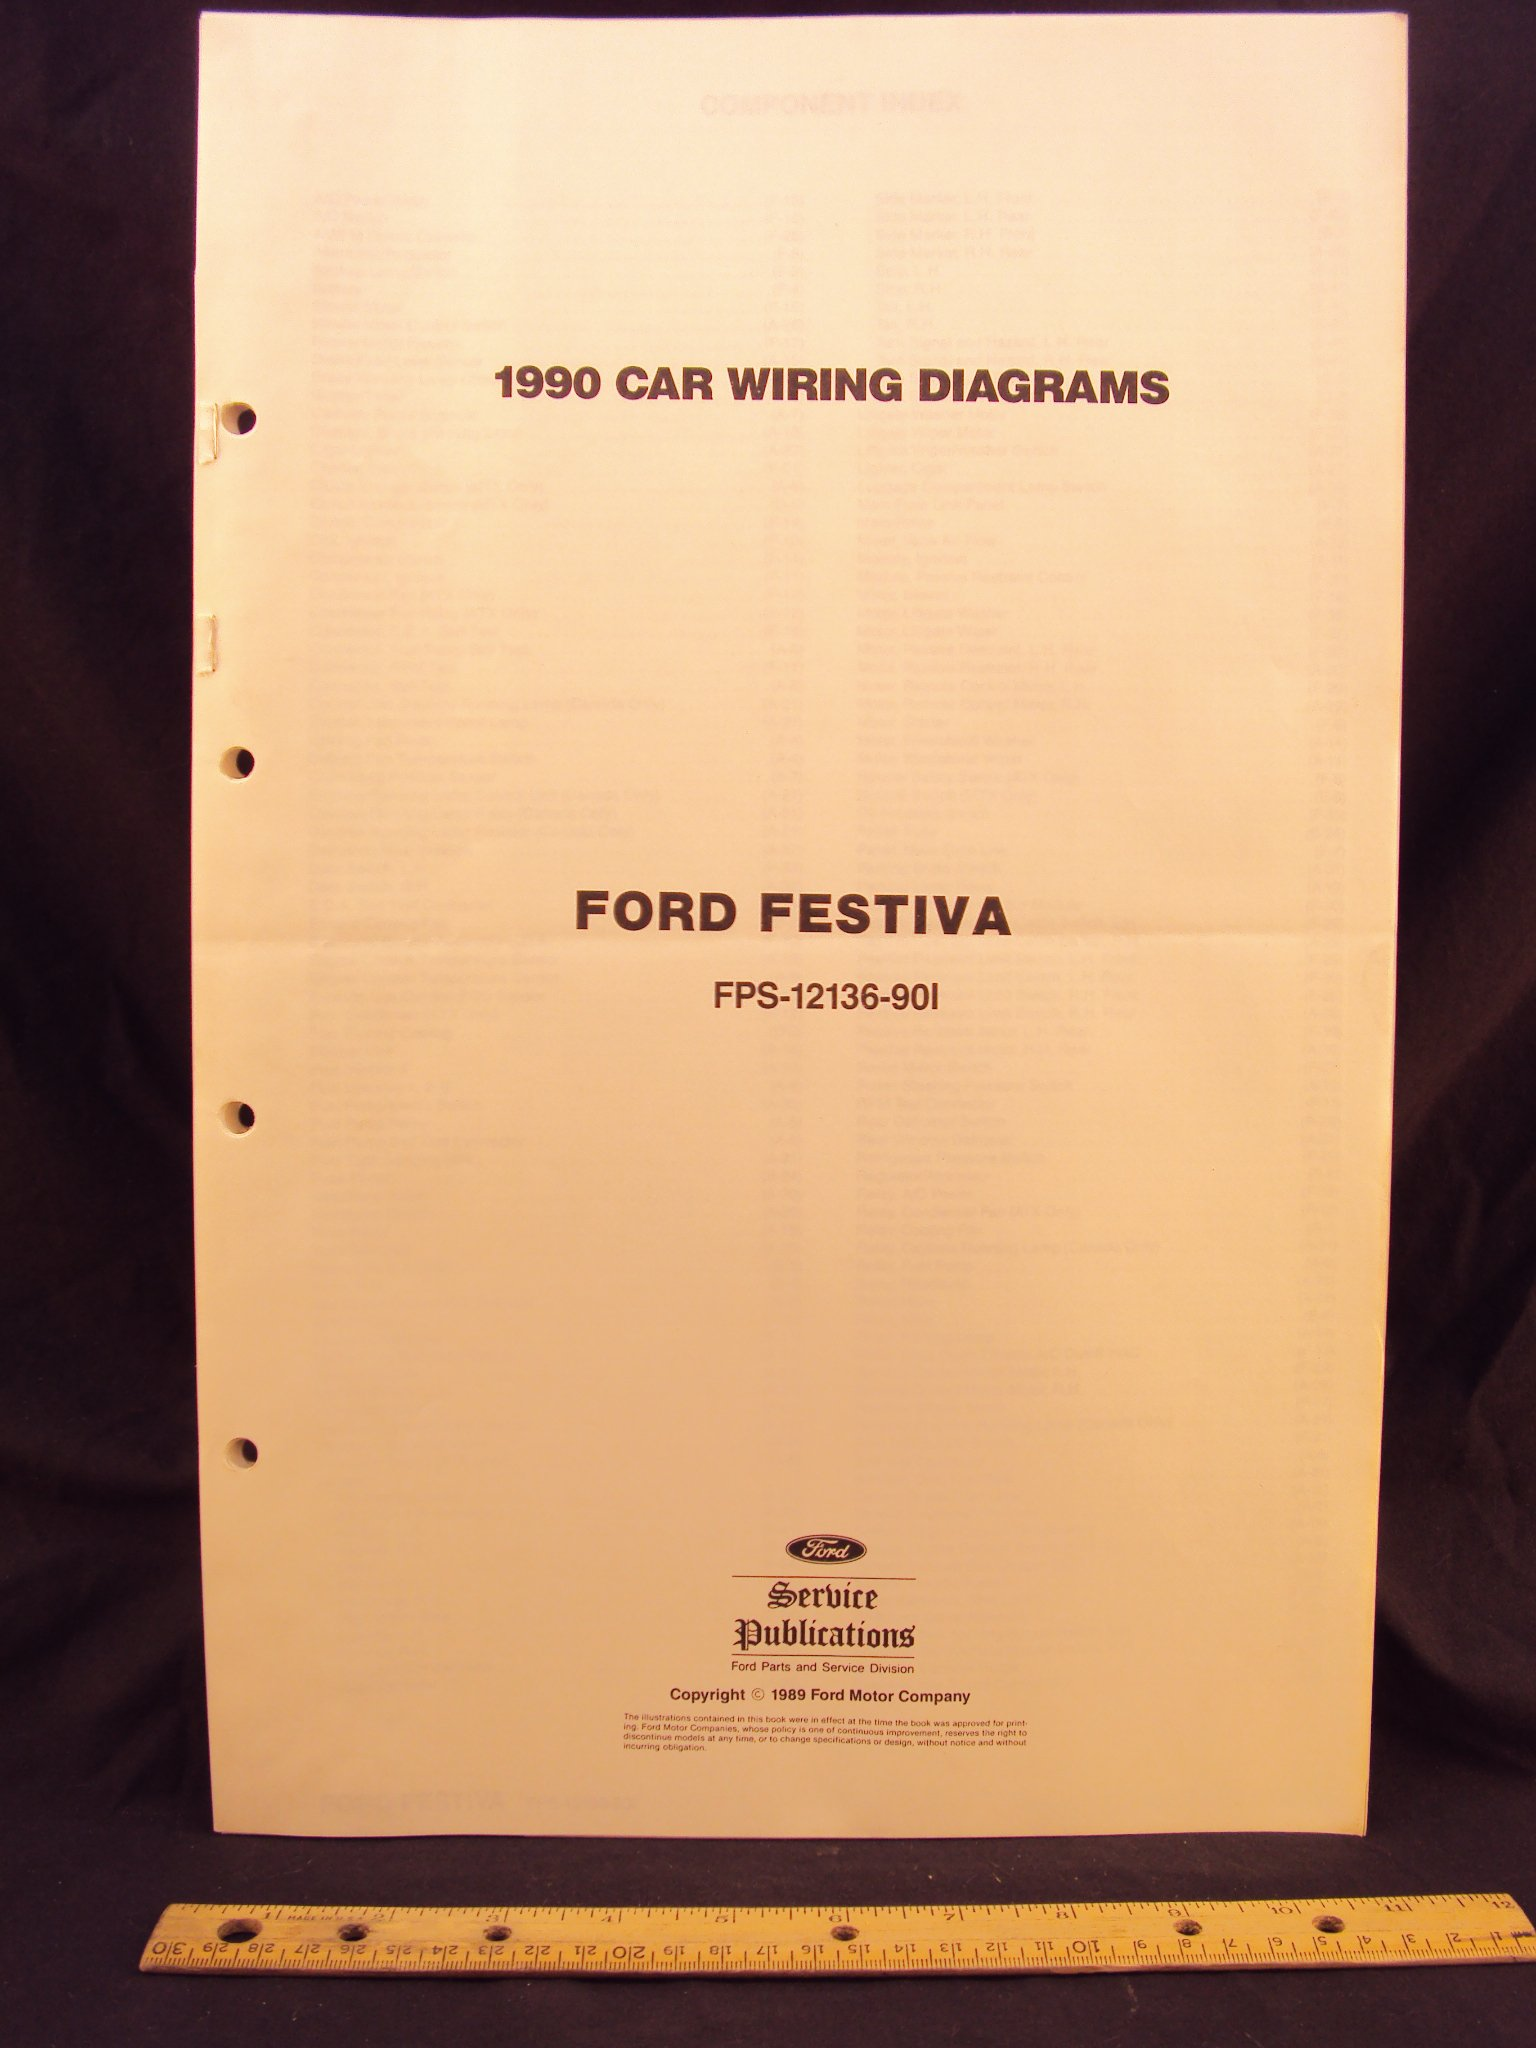 1990 ford festiva electrical wiring diagrams schematics ford1990 ford festiva electrical wiring diagrams schematics loose leaf \u2013 january 1, 1989